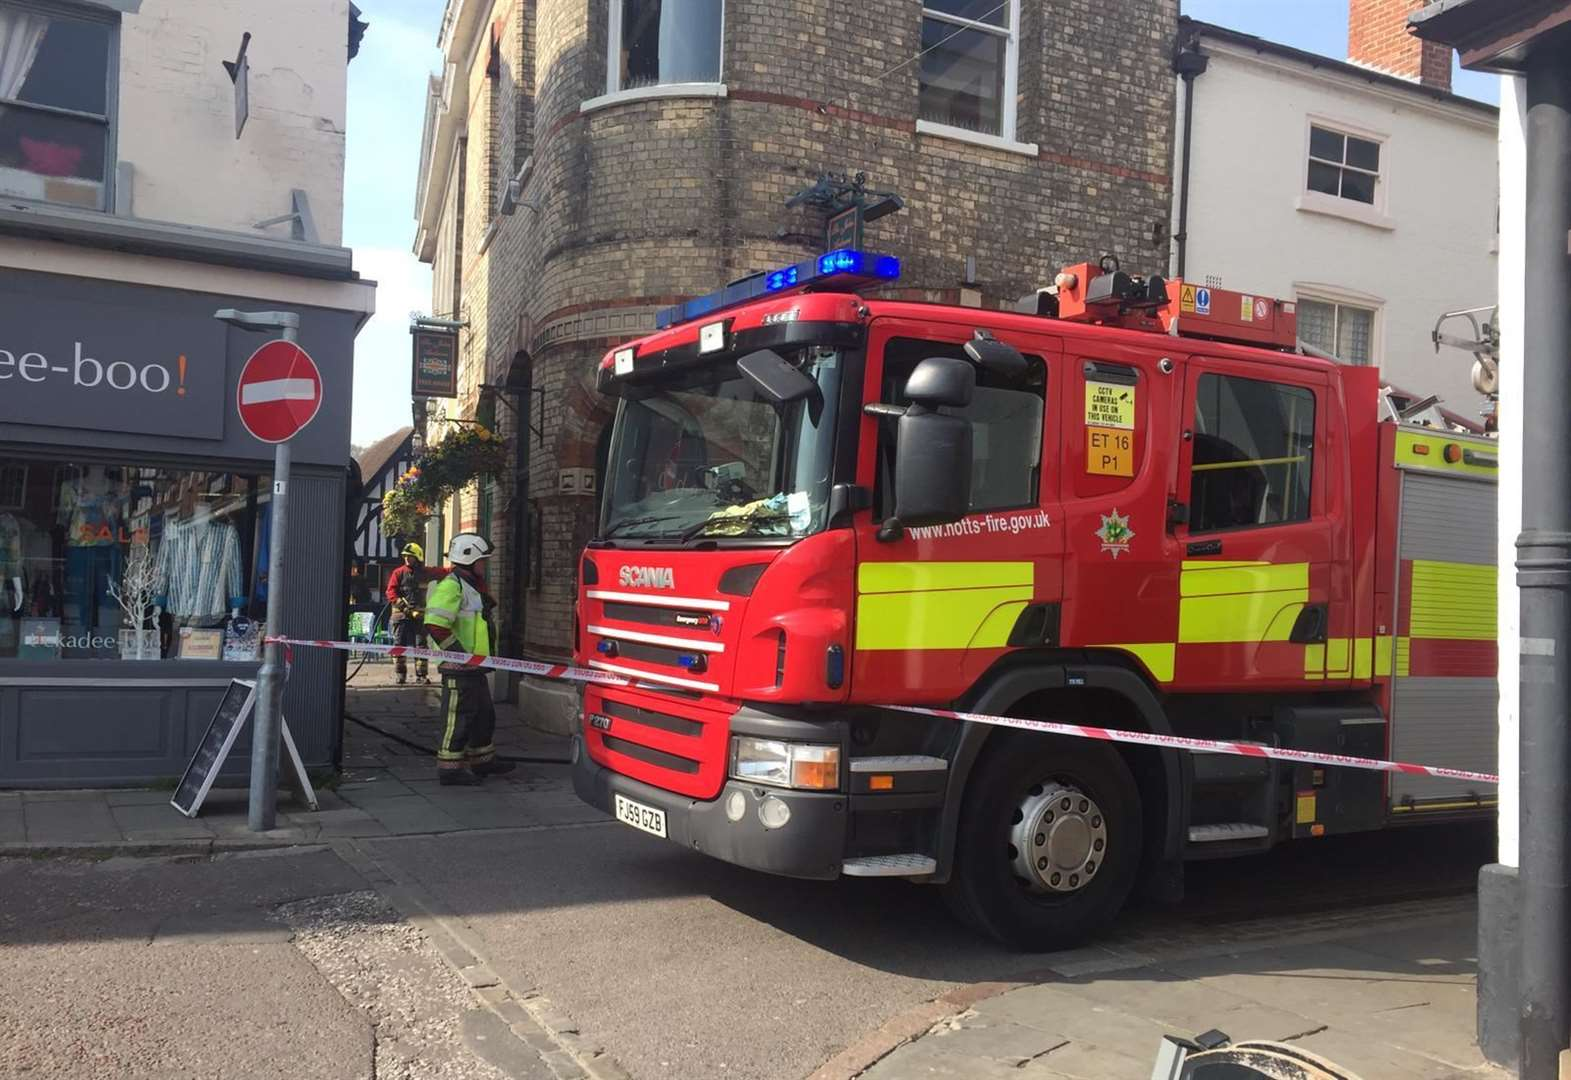 Fire at Wetherspoons was in the basement